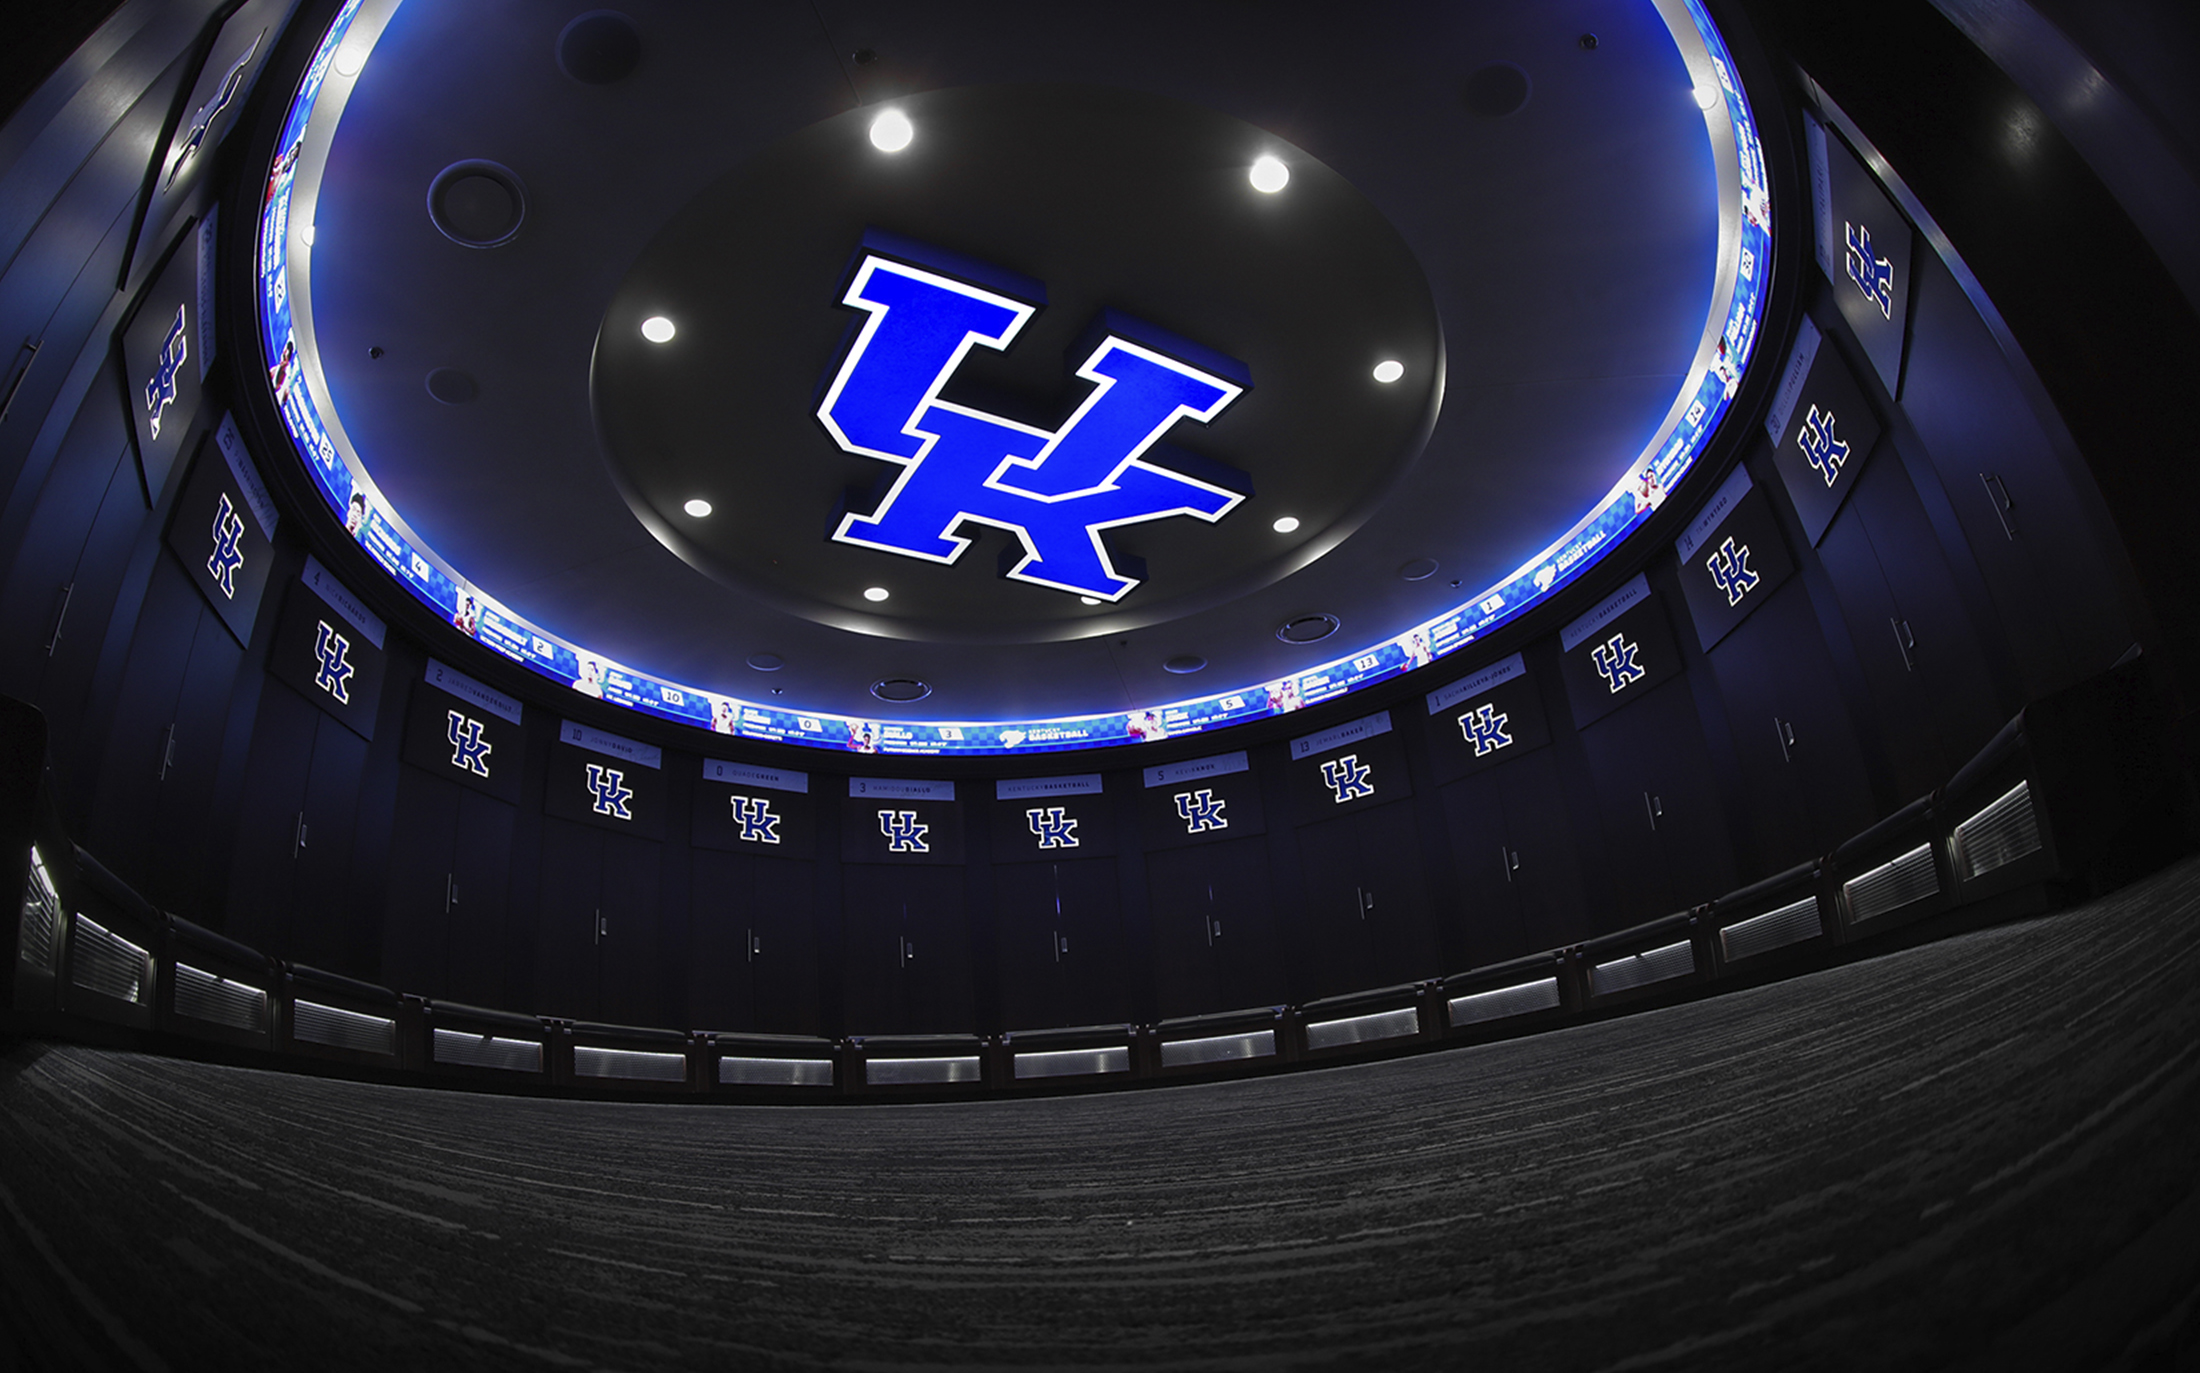 UK_locker room.jpg